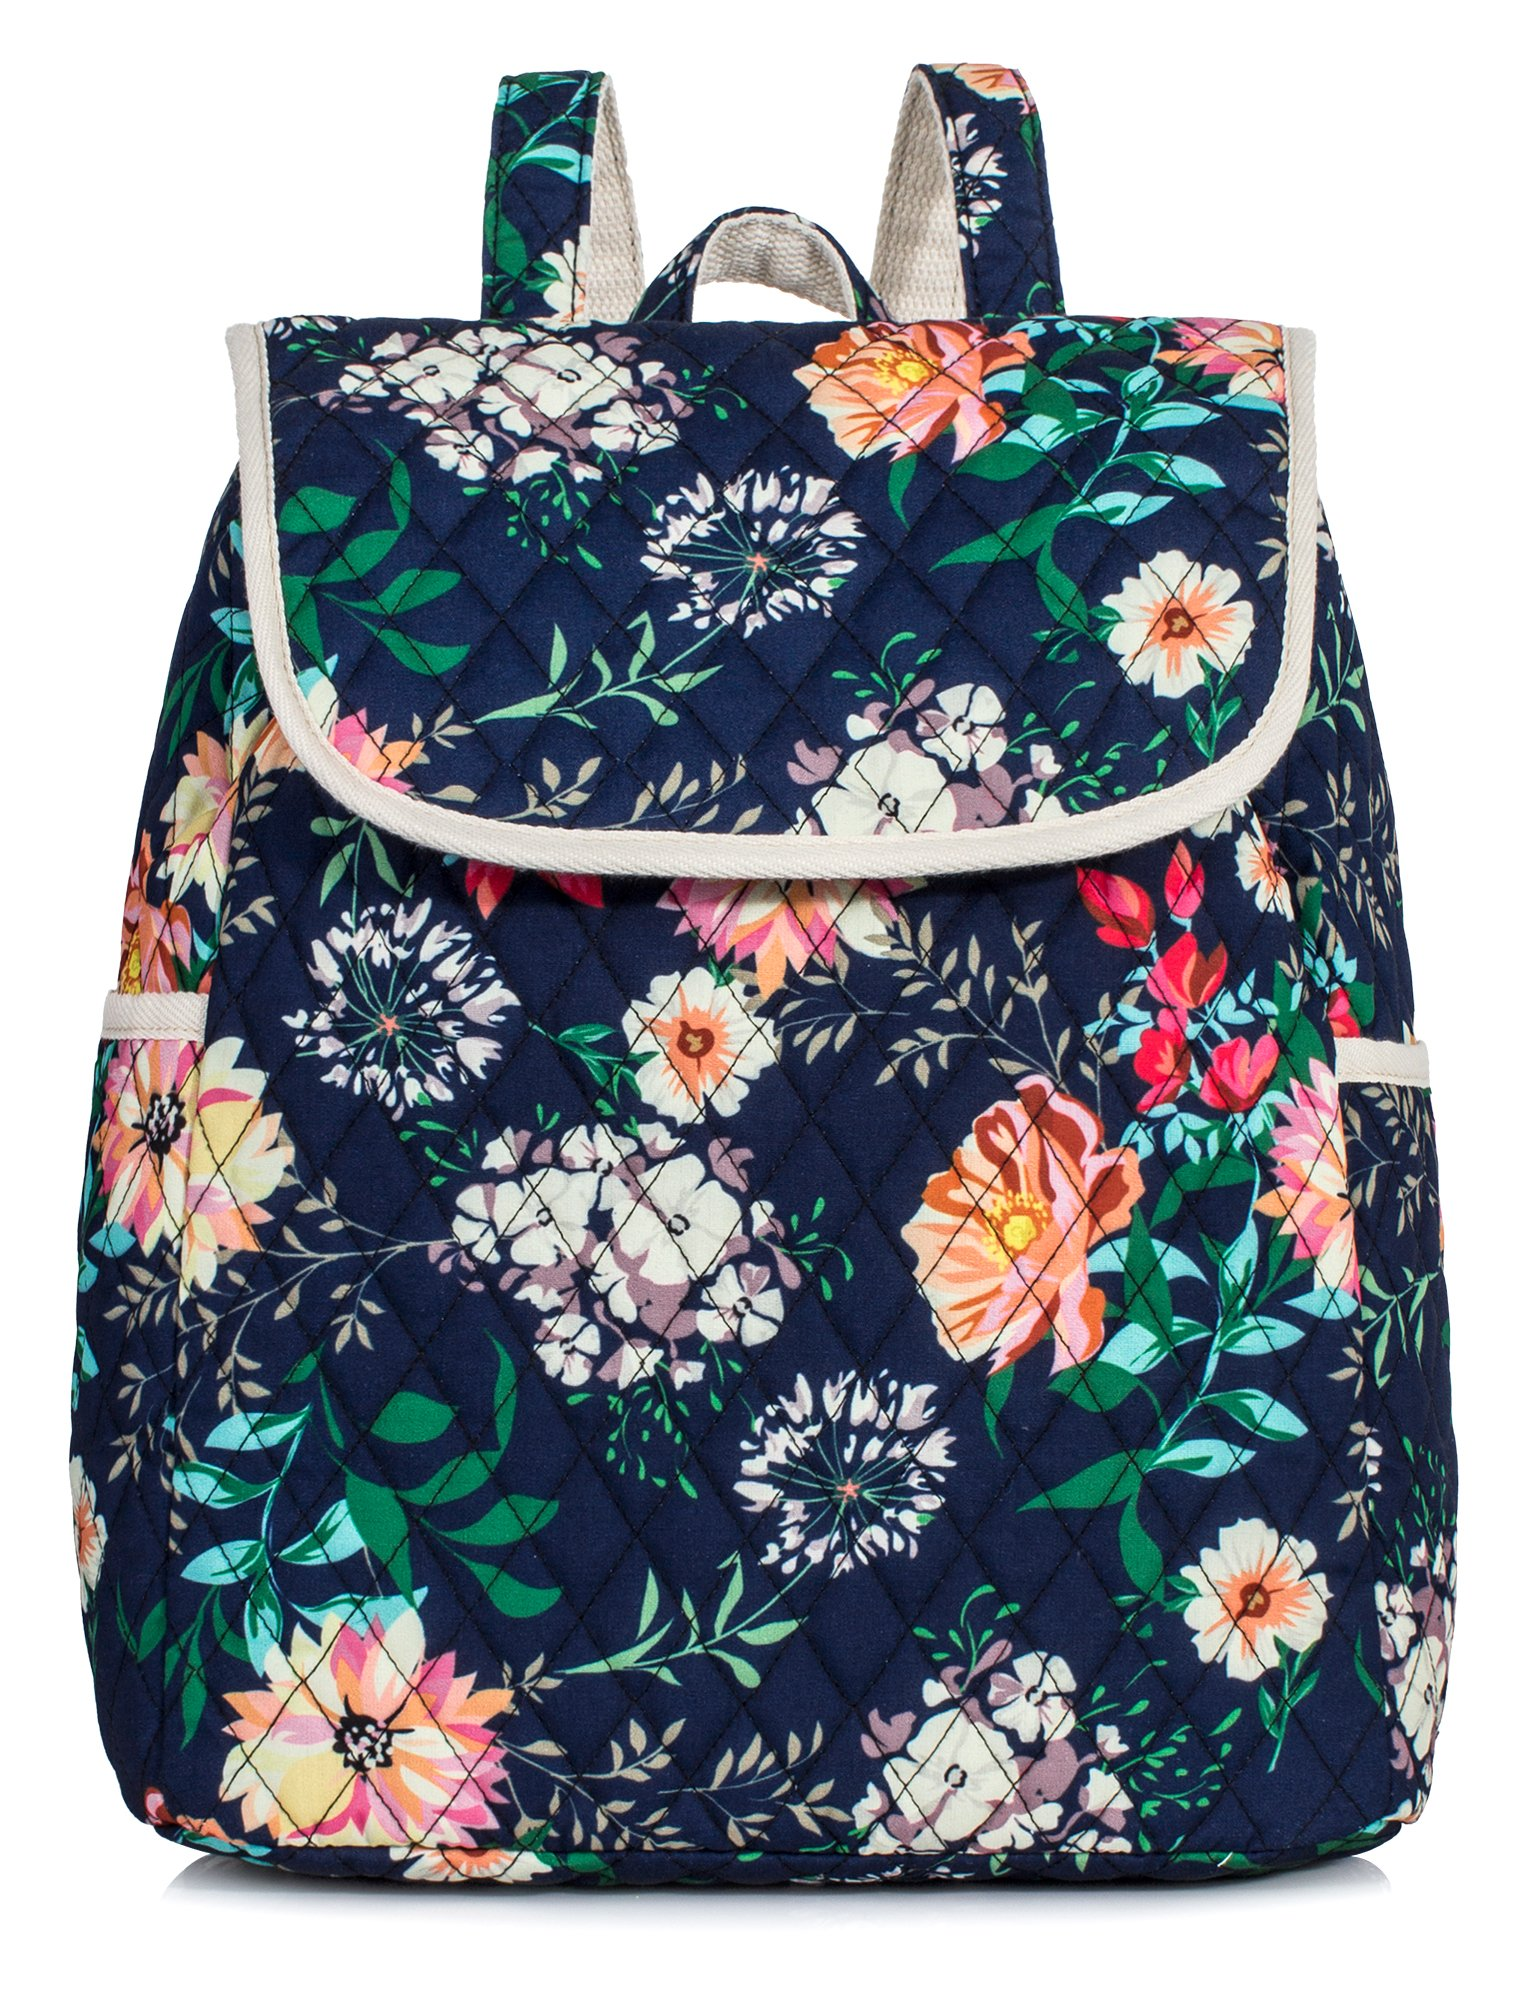 Backpack for Teenage Girls, Floral College Student School School Canvas Bag Knapsack